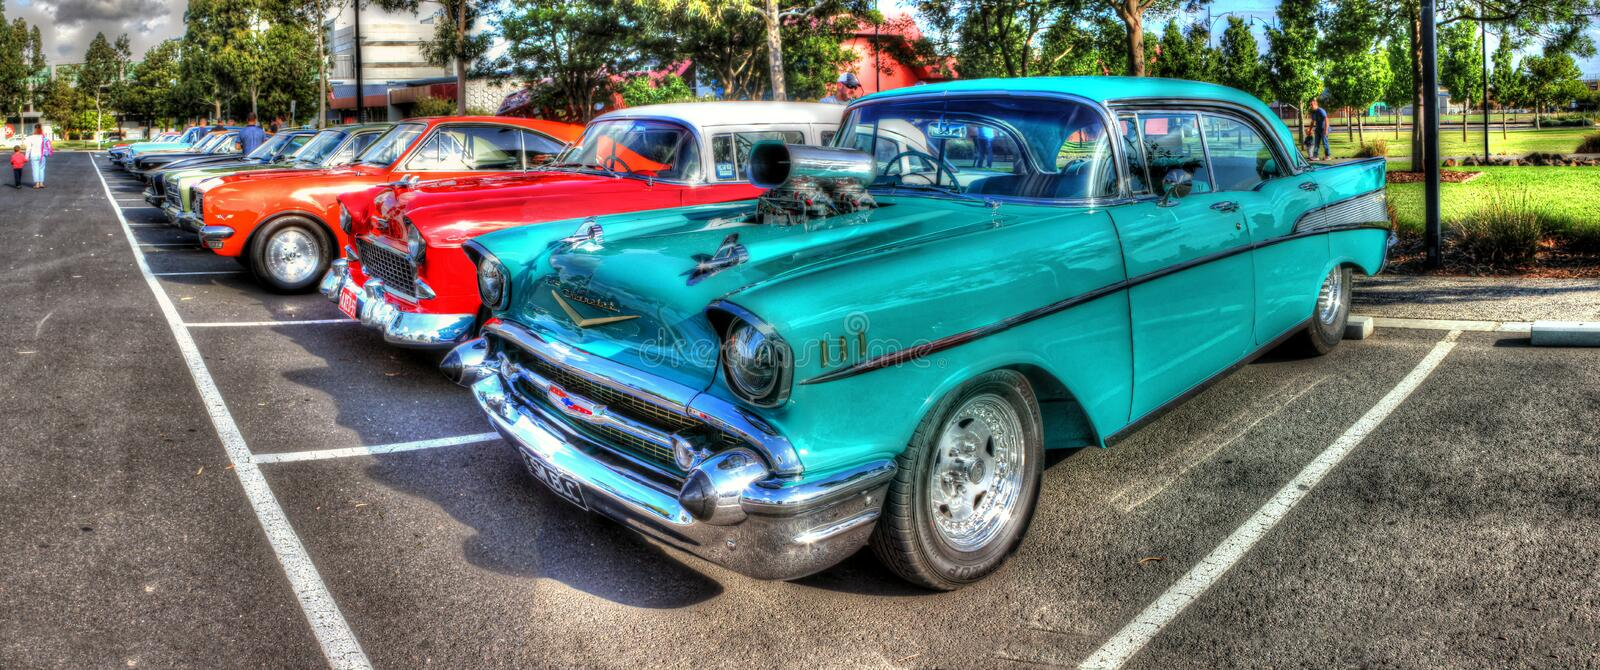 Classic 1950s Chevy hot rod royalty free stock photos